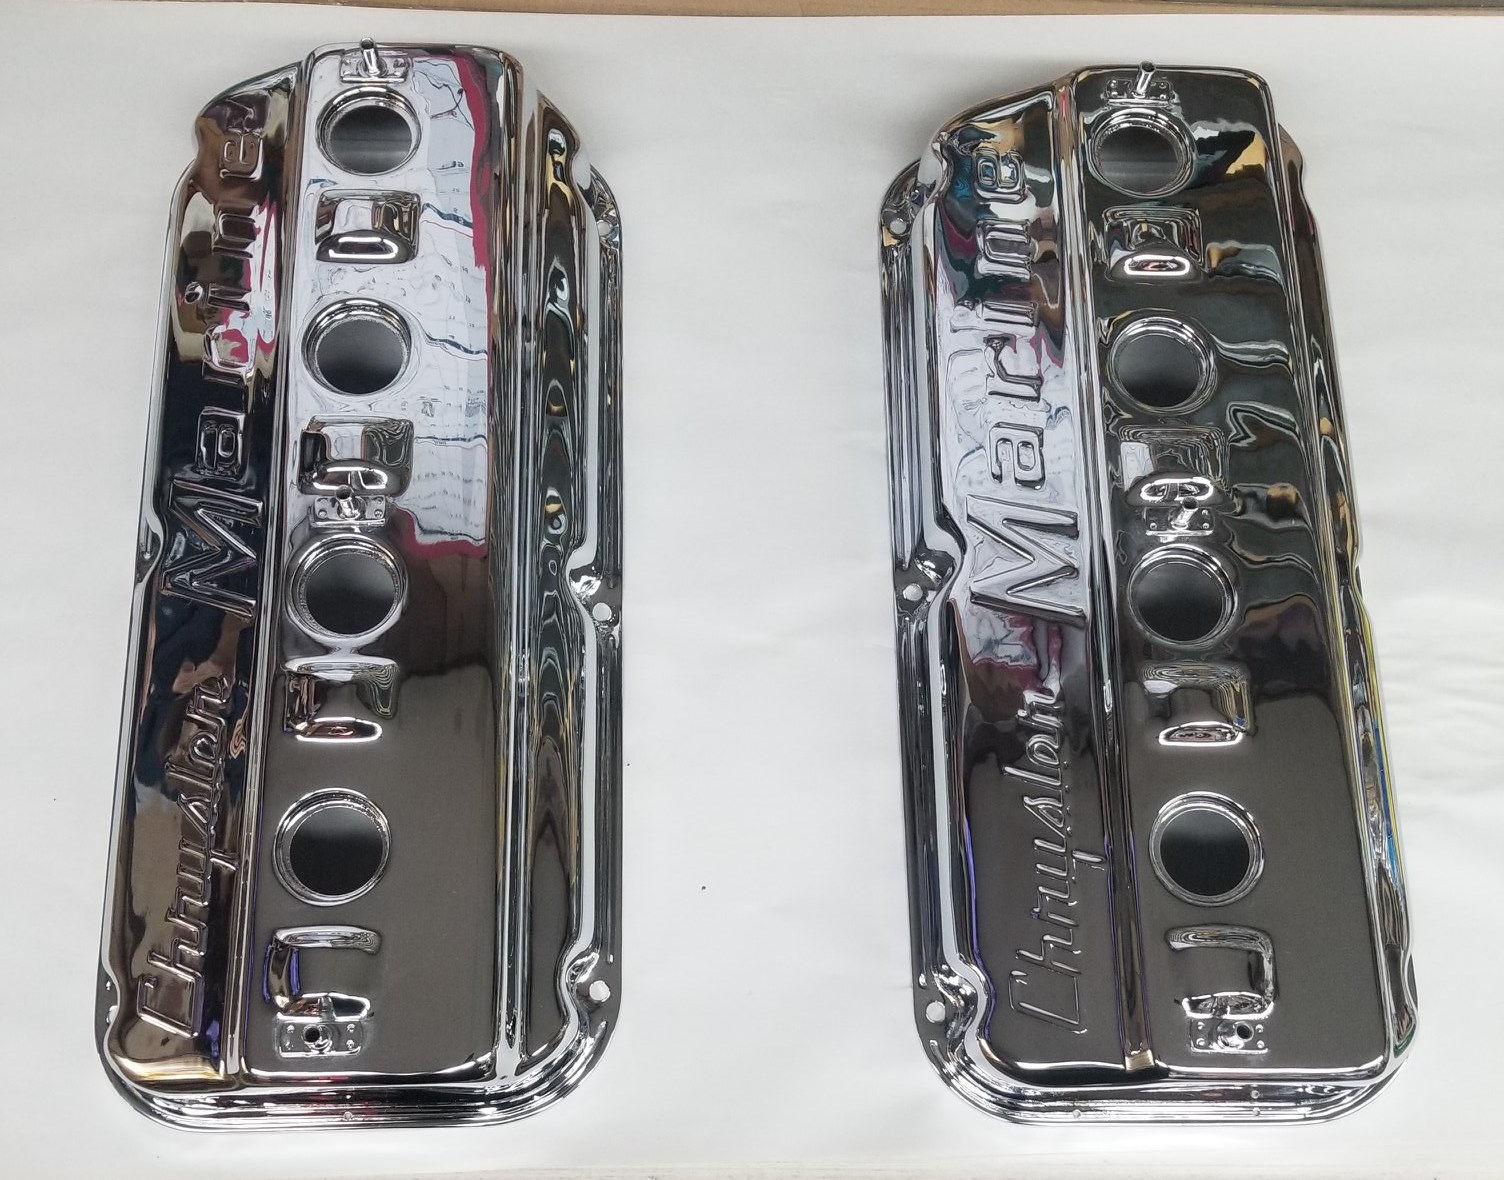 Valve covers for a Chrysler Hemi Marine Craft